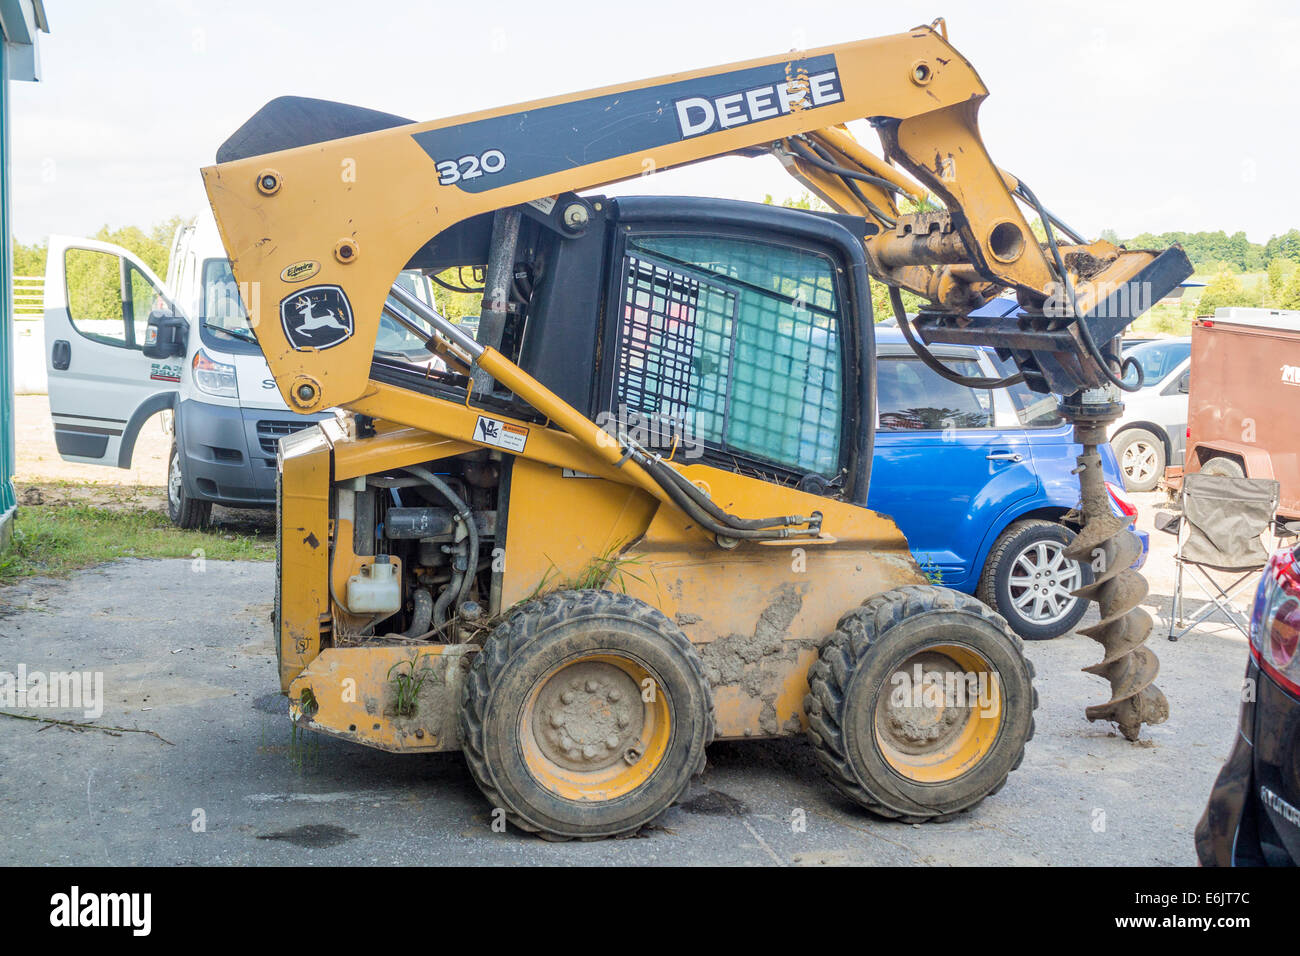 johm-deere-skid-steer-with-attached-auge